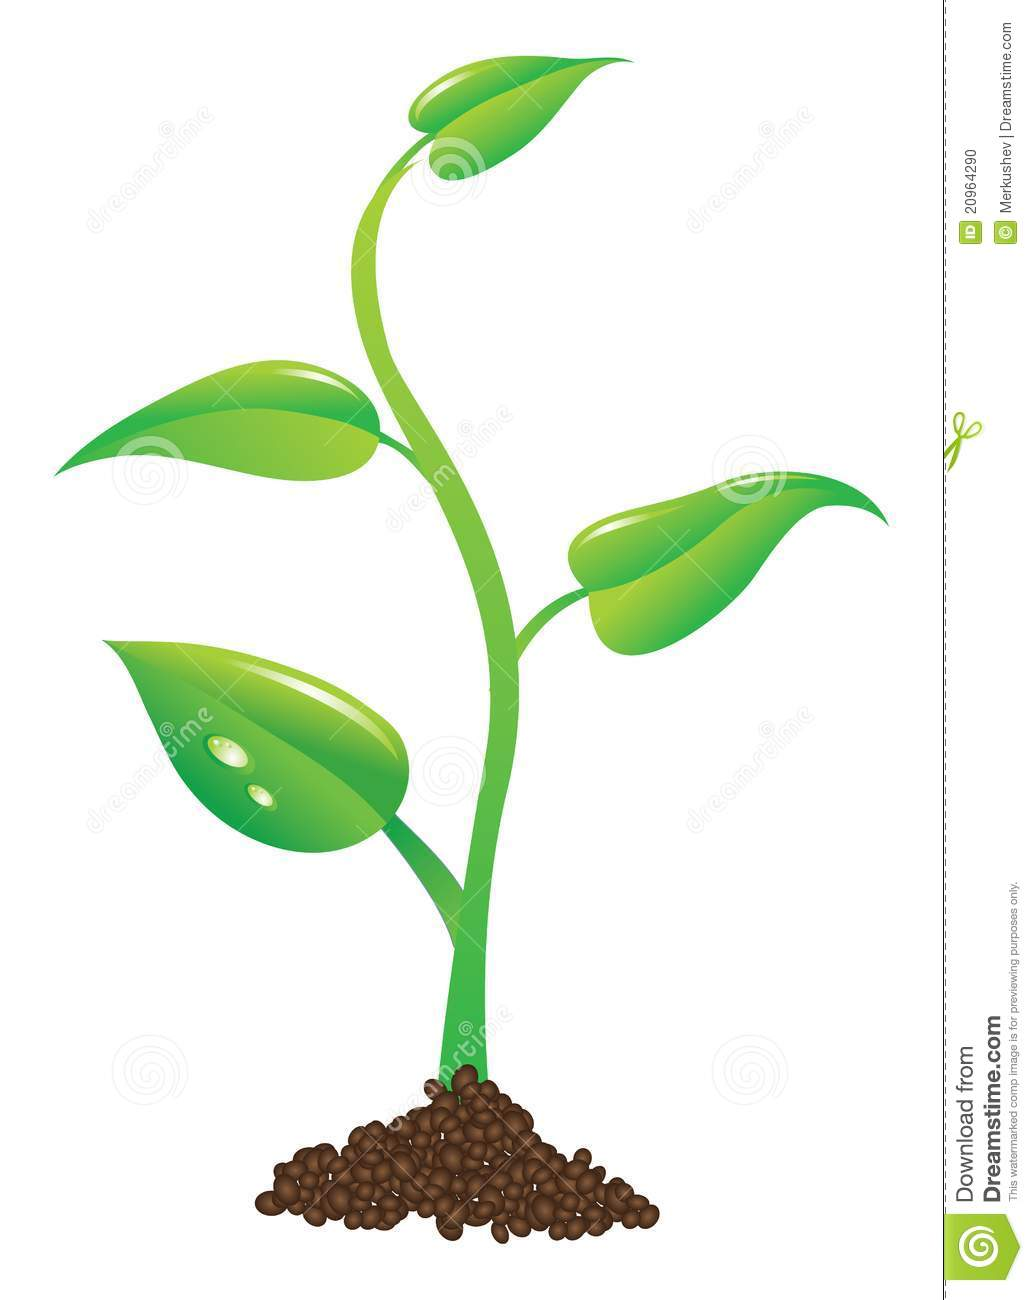 Roots clipart baby seedling Plant Search clipart Google plant